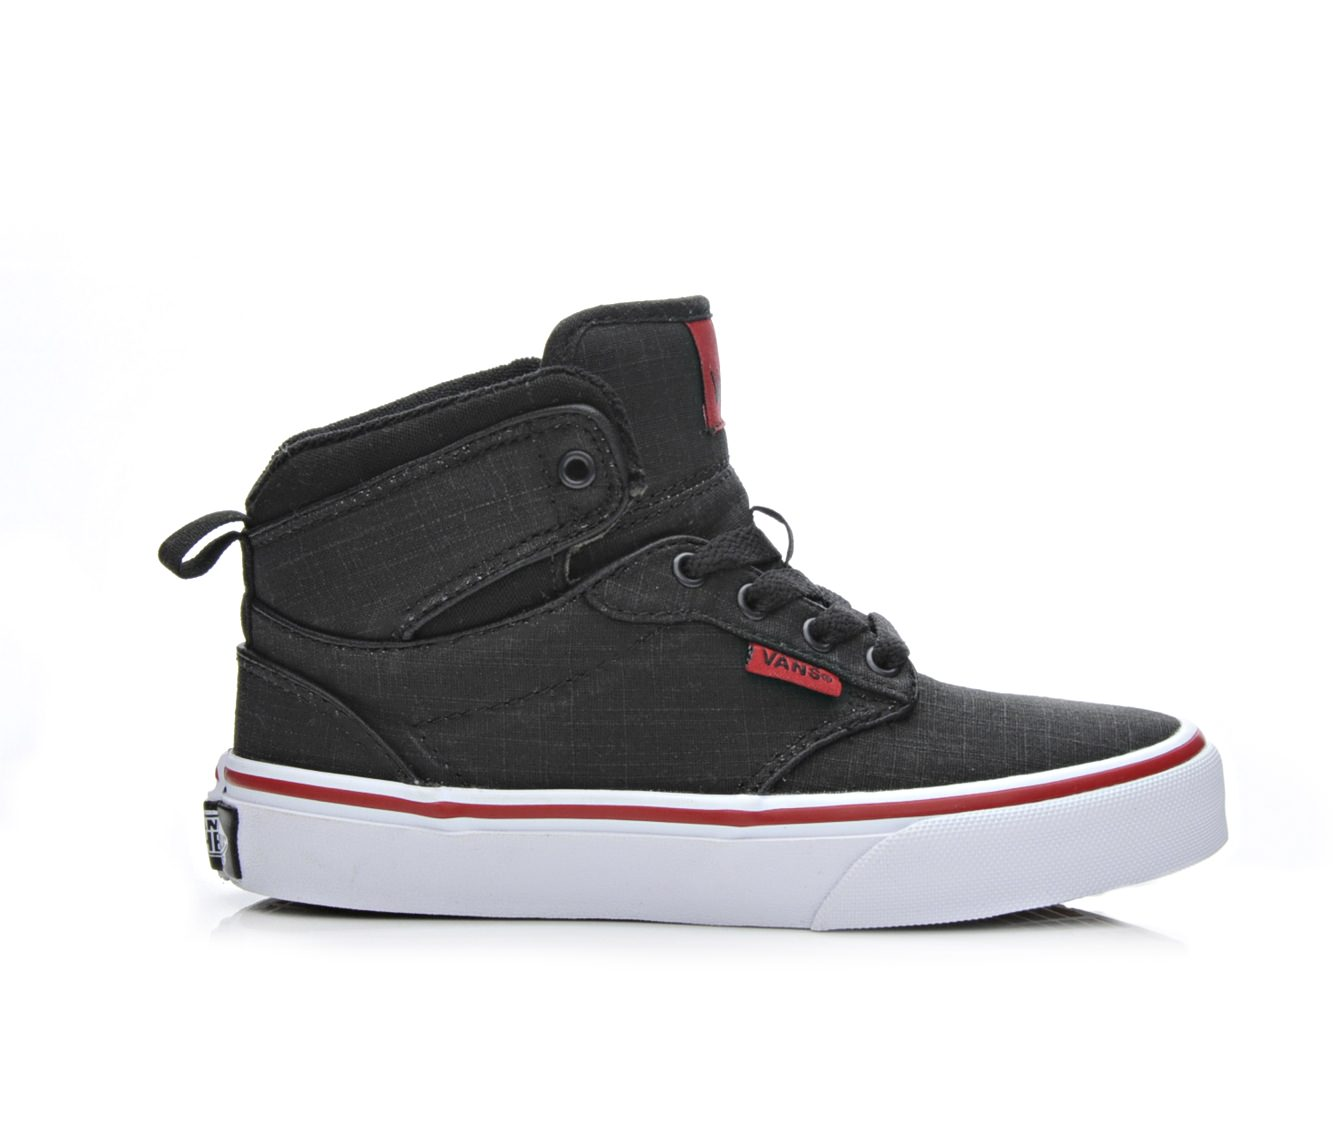 Boys' Vans Atwood Hi Skate Shoes (Black)